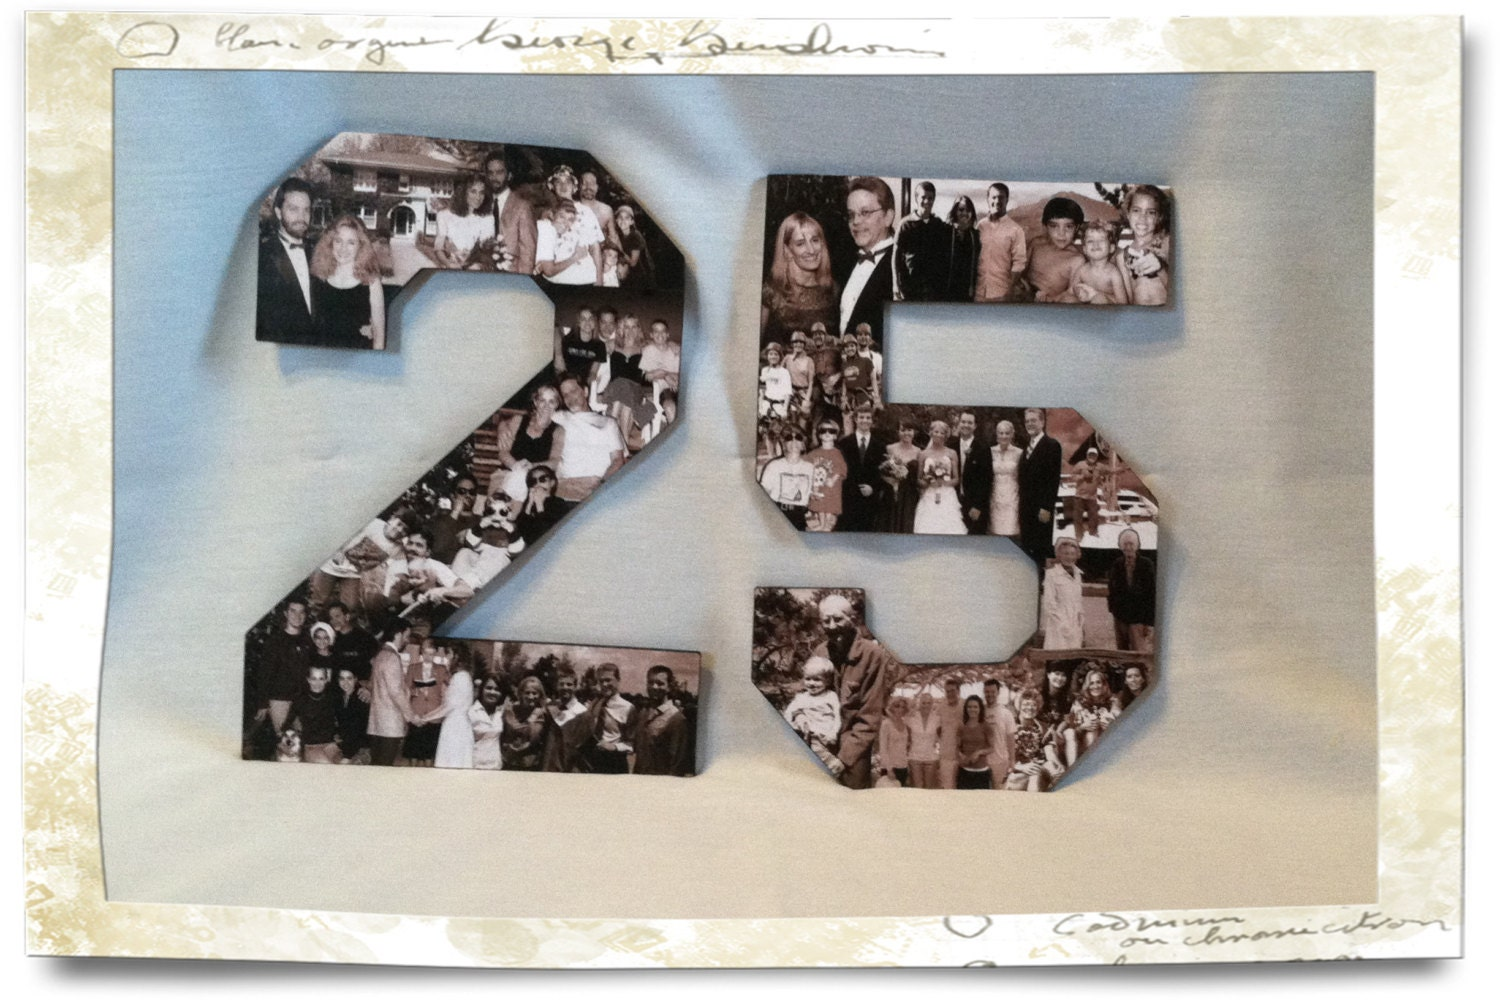 Good Gifts For 25th Wedding Anniversary: 25th Anniversary Collage 25th Wedding Anniversary Collage